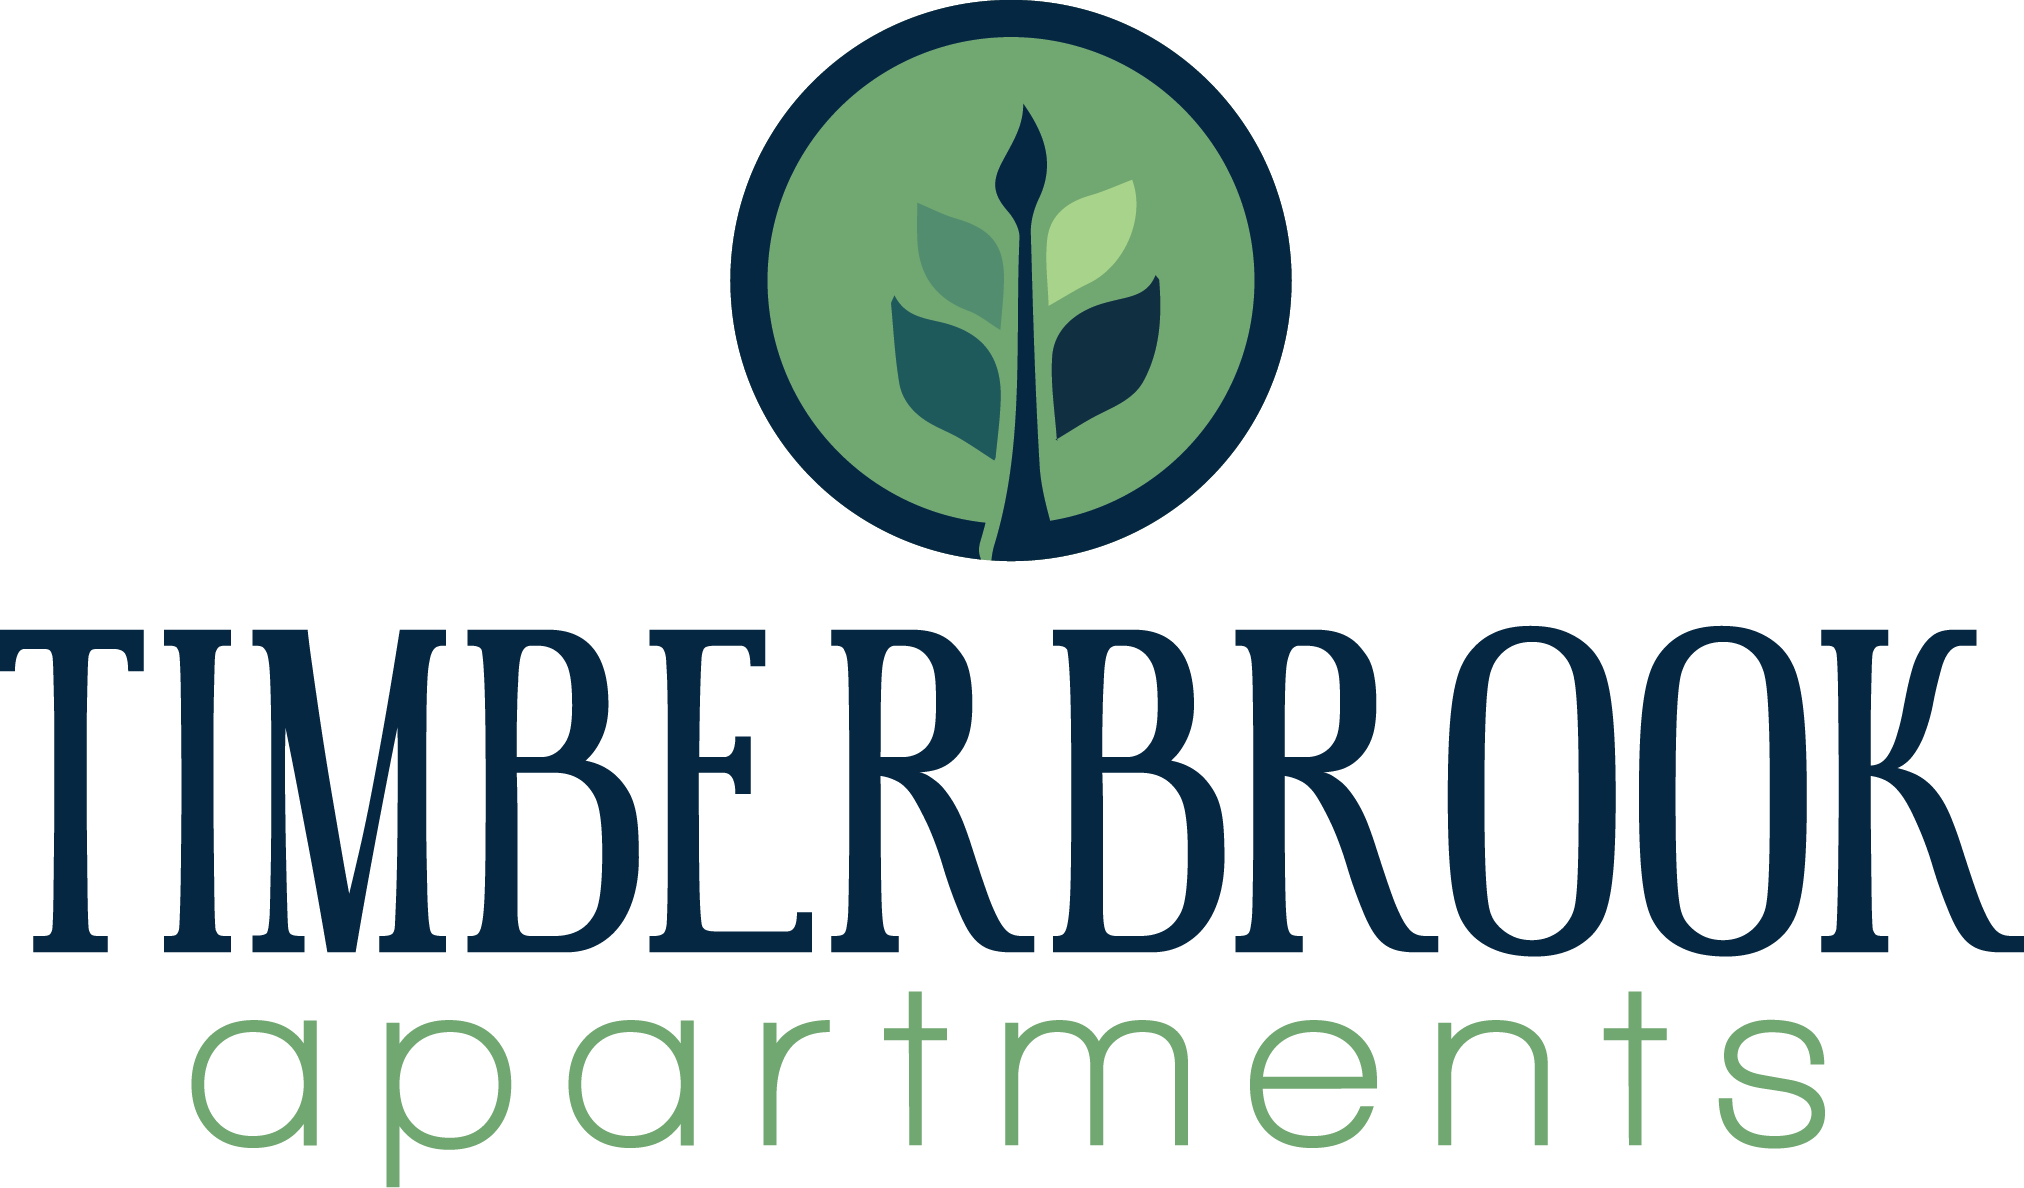 Timberbrook Apartments